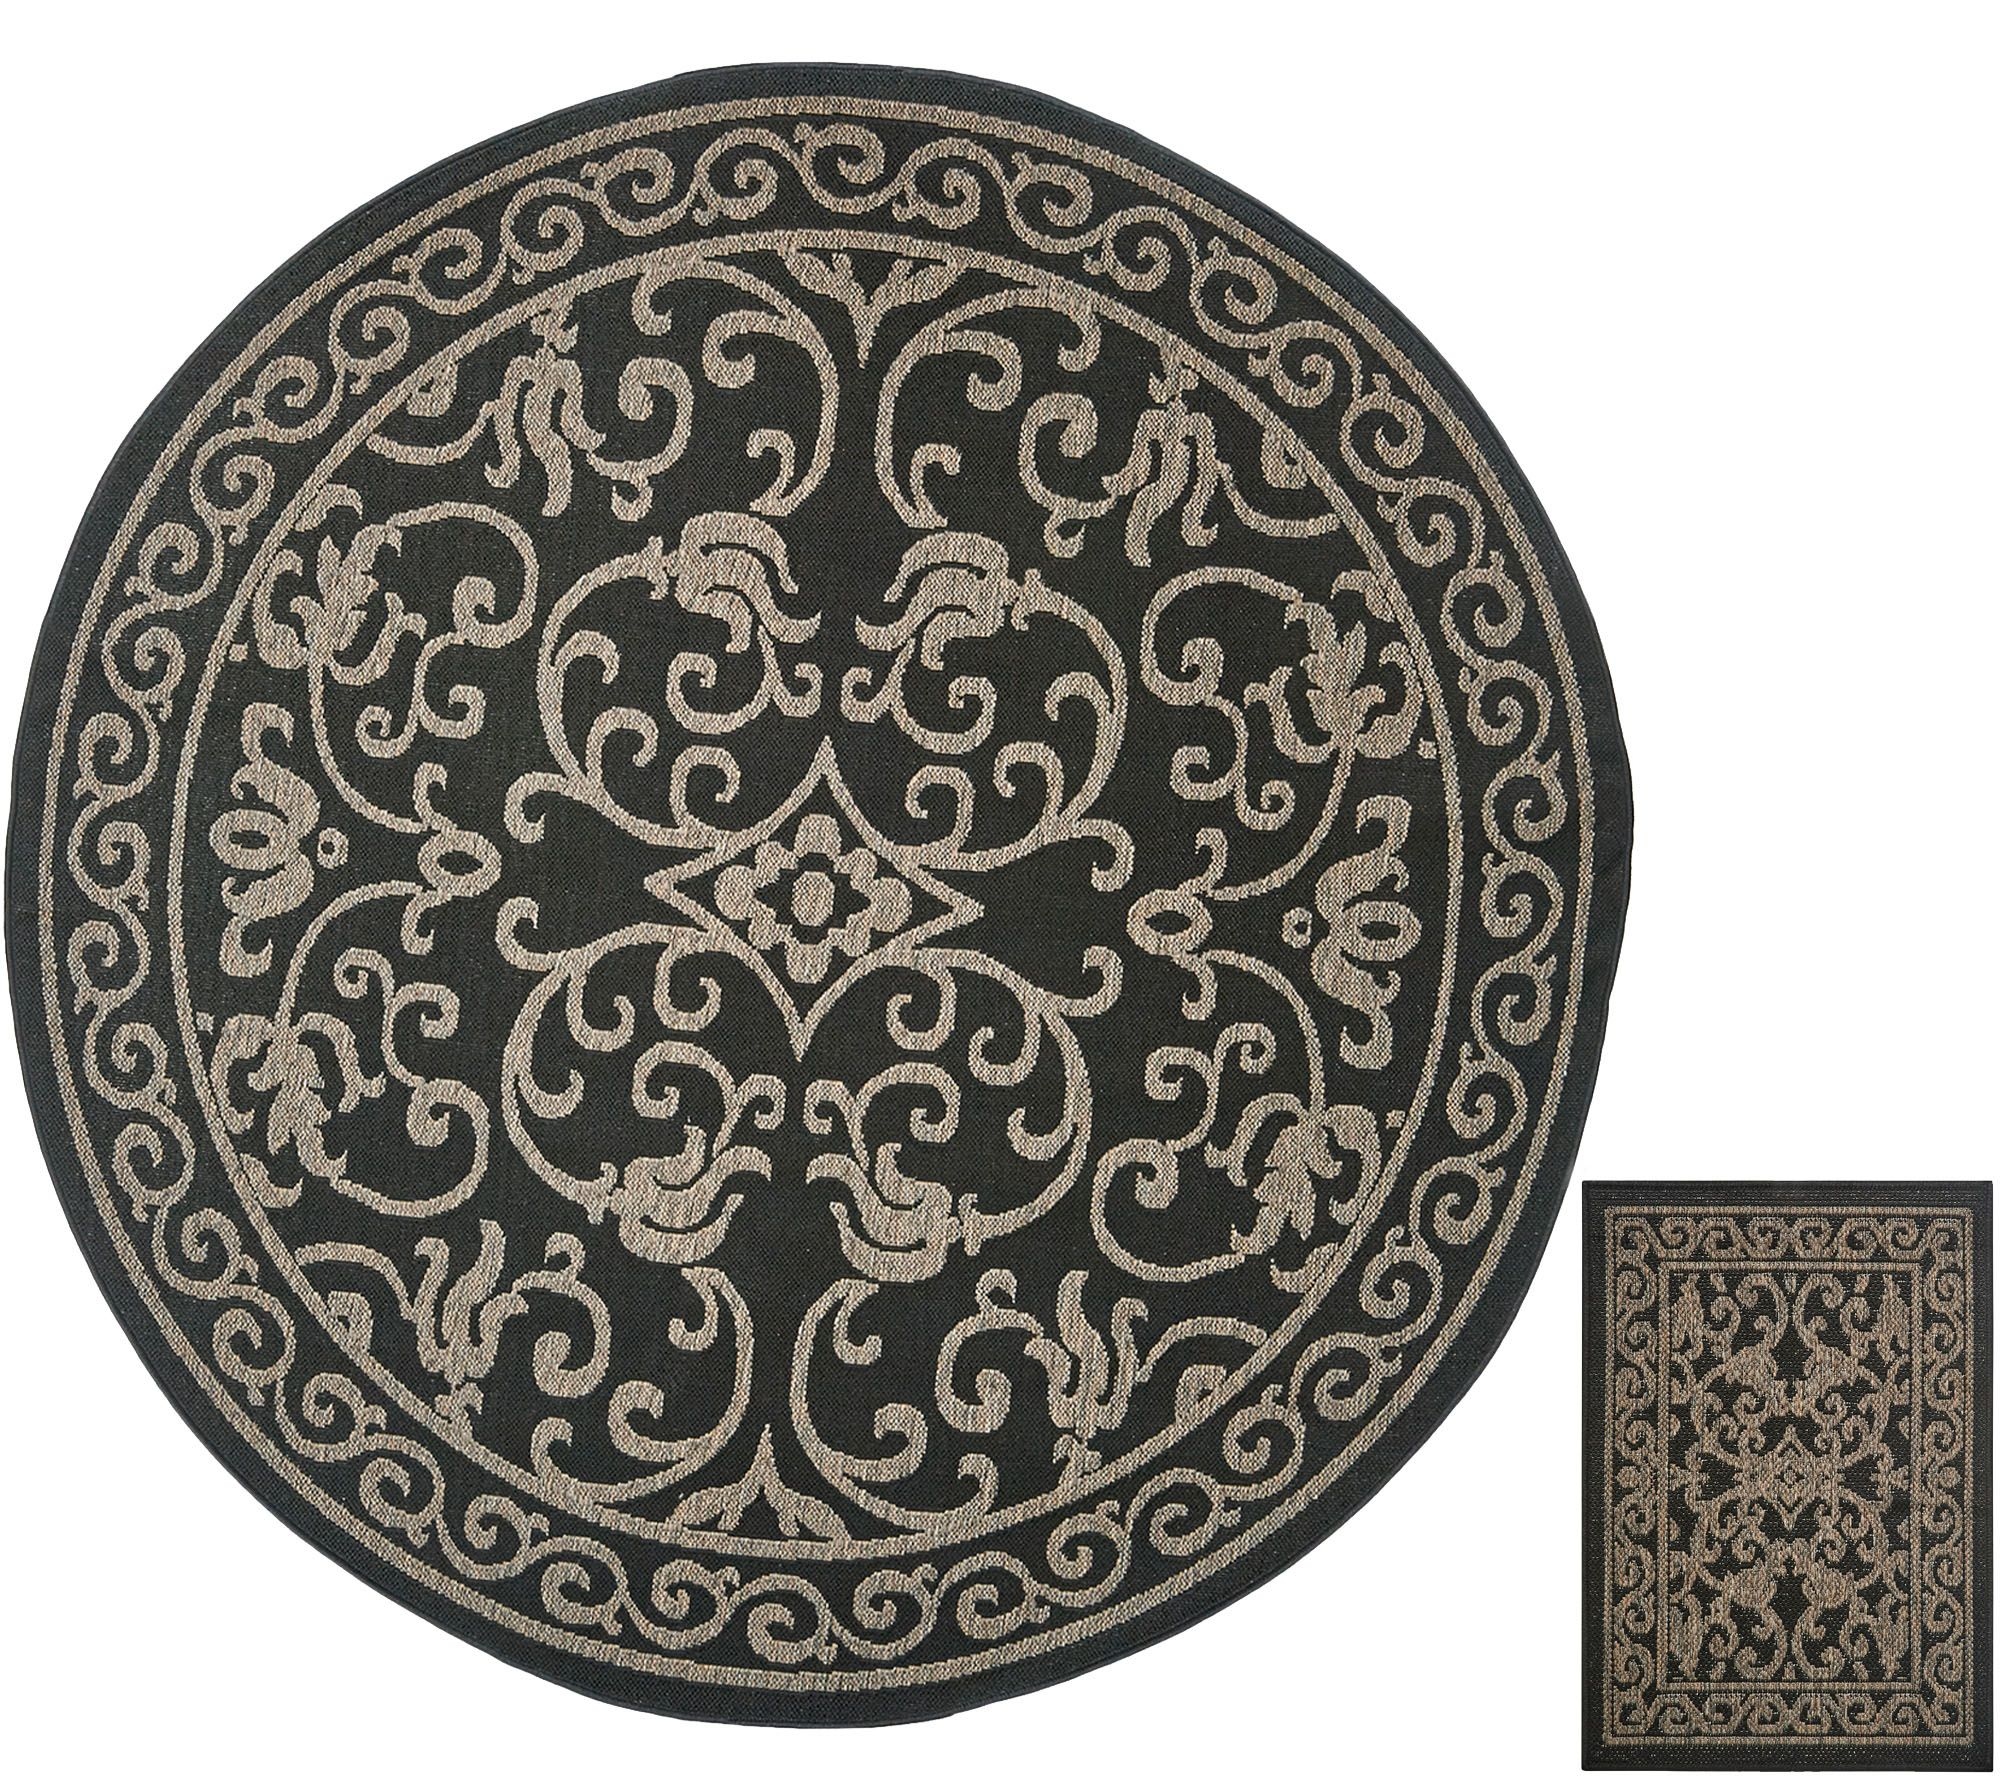 "Round Outdoor Rugs For Patios: Veranda Living 84"" Round Indoor/Outdoor Scroll Rug With"